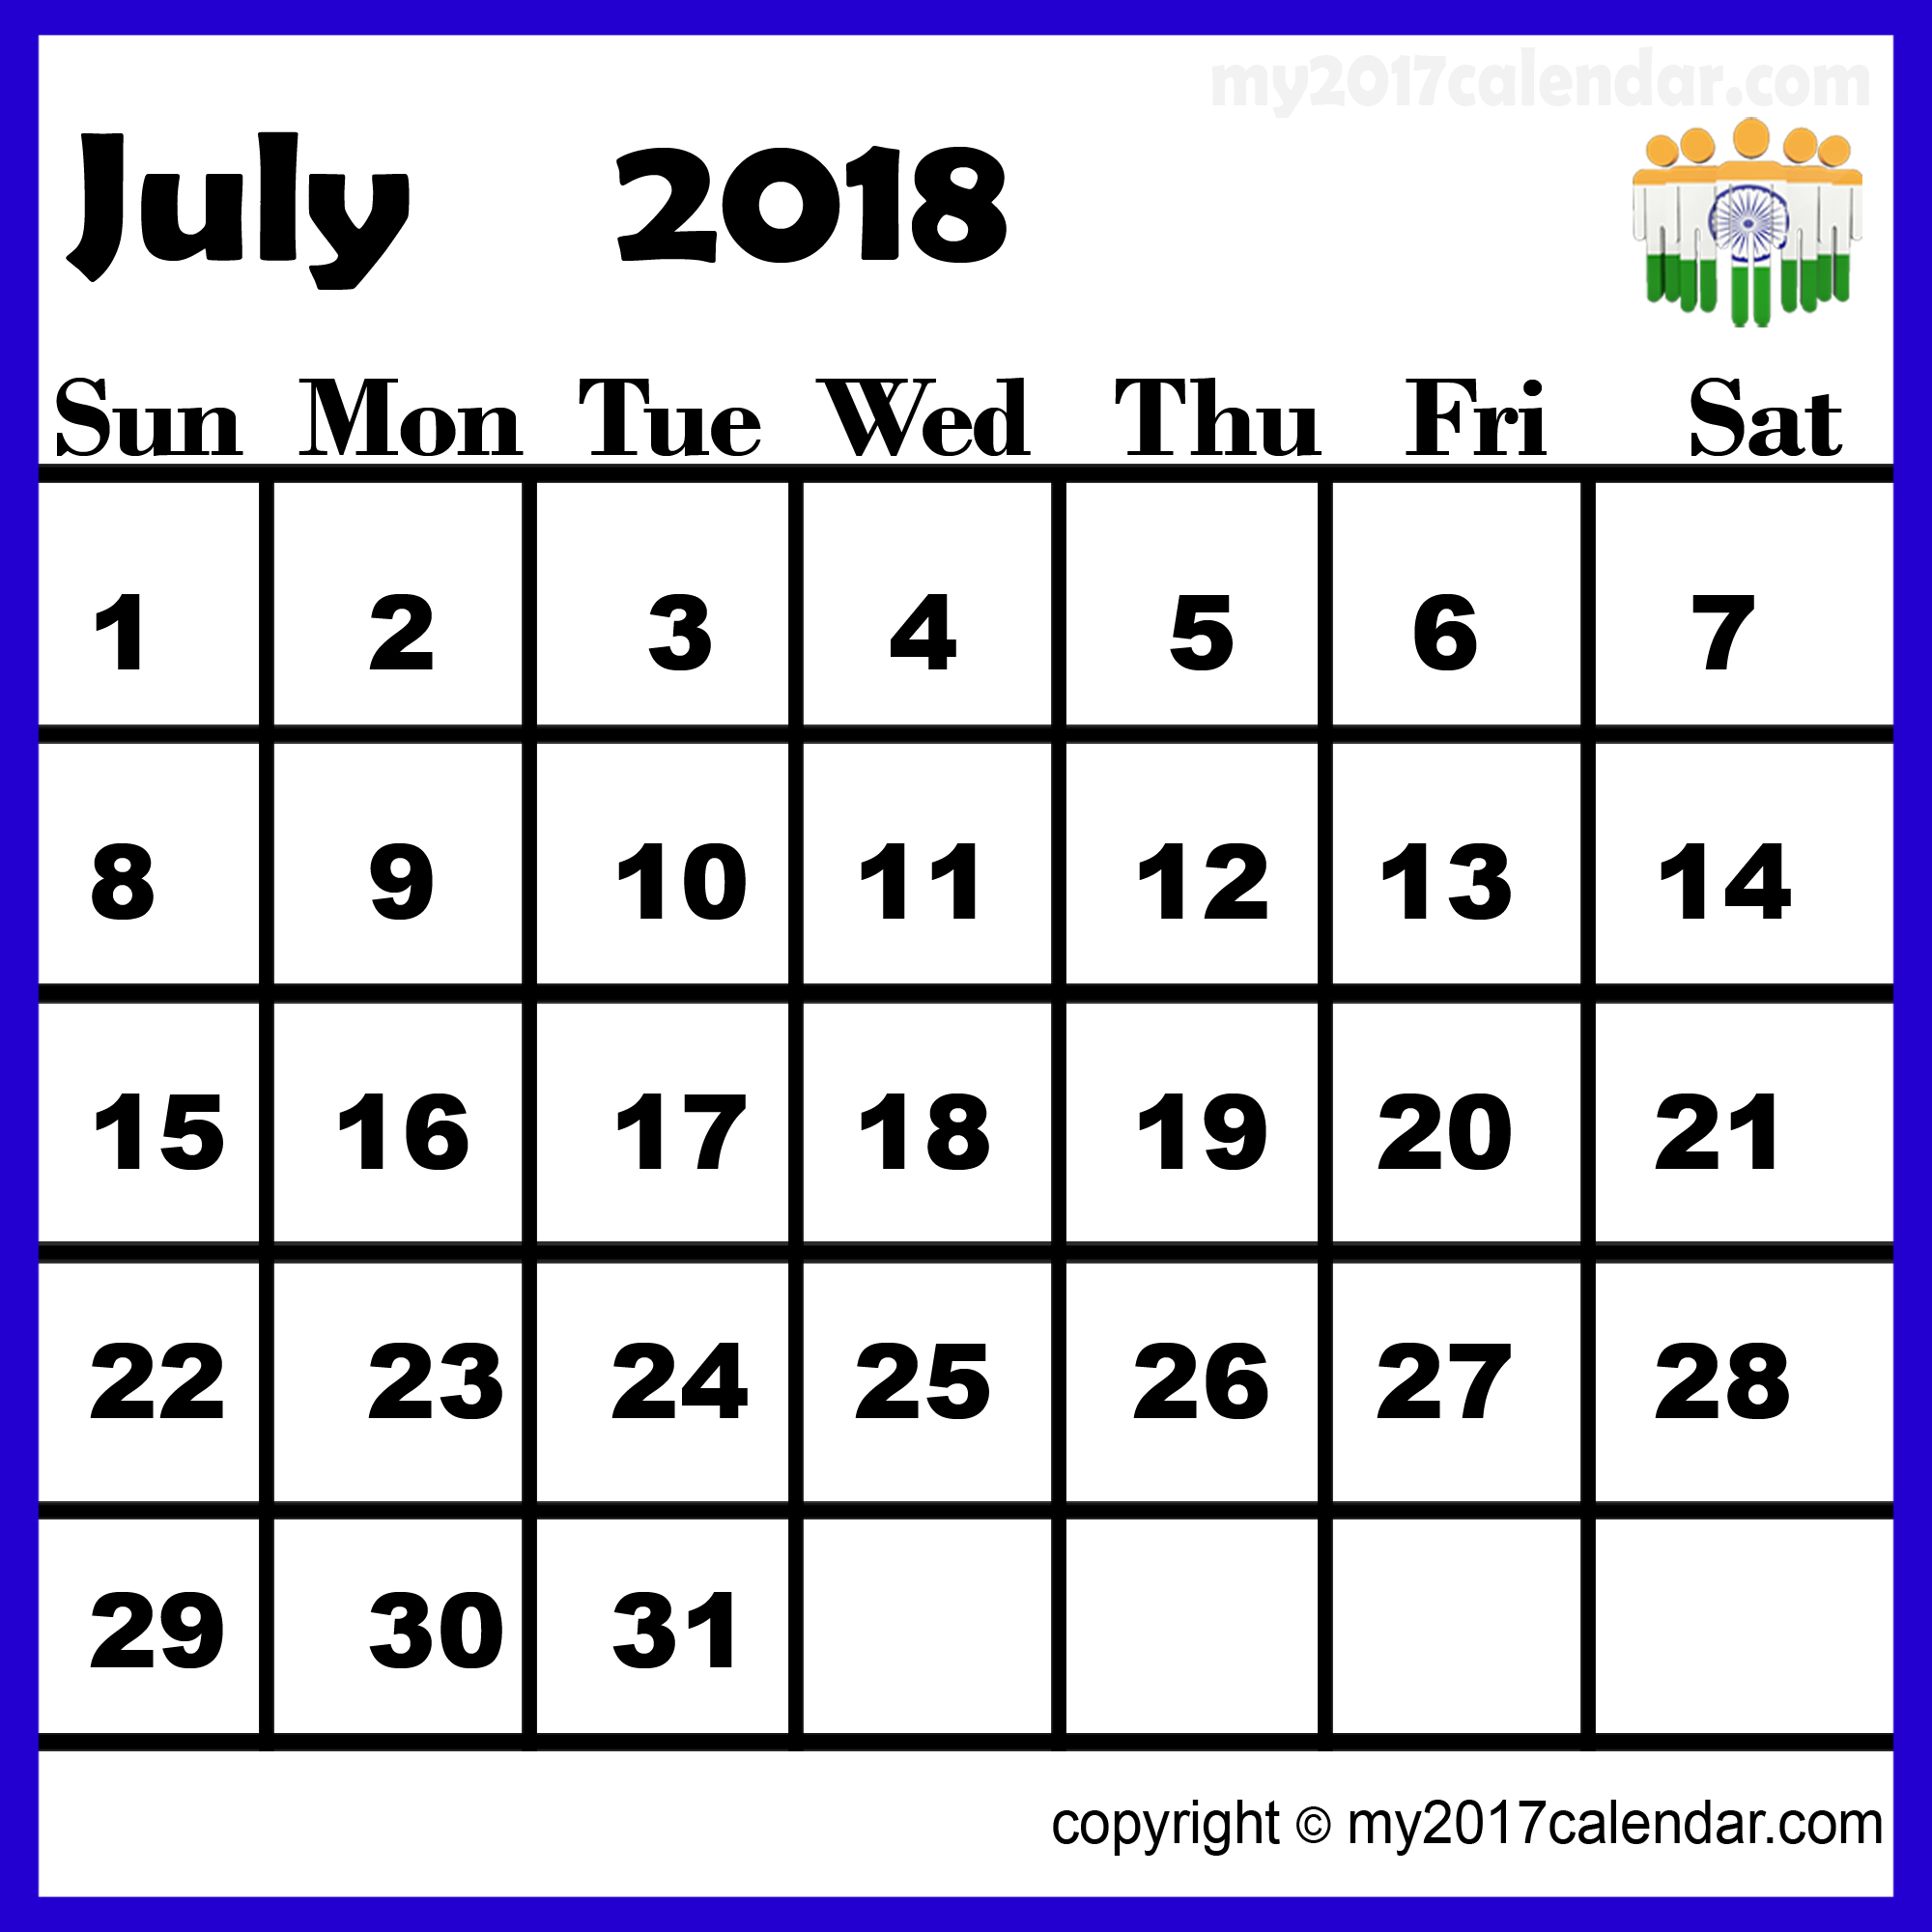 July 2018 Calendar India with Holidays